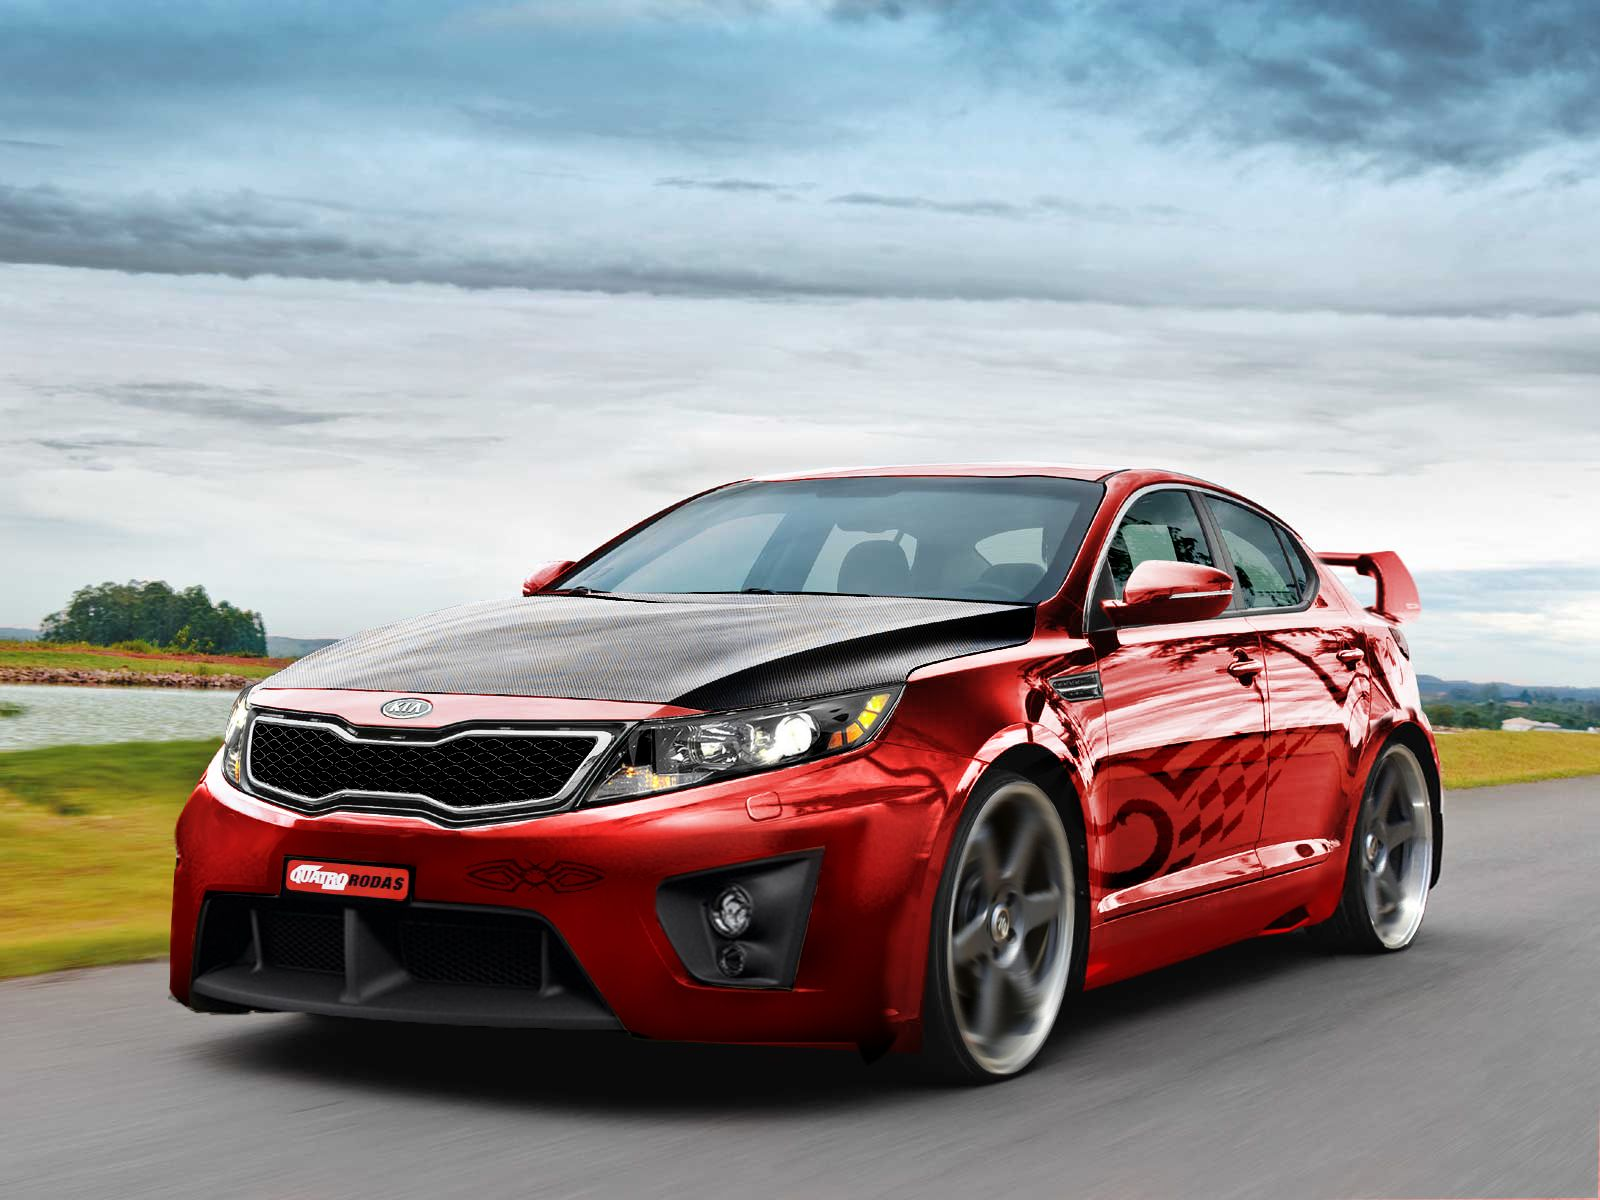 Kia Optima Kia Pinterest Kia Optima Cars And Jdm